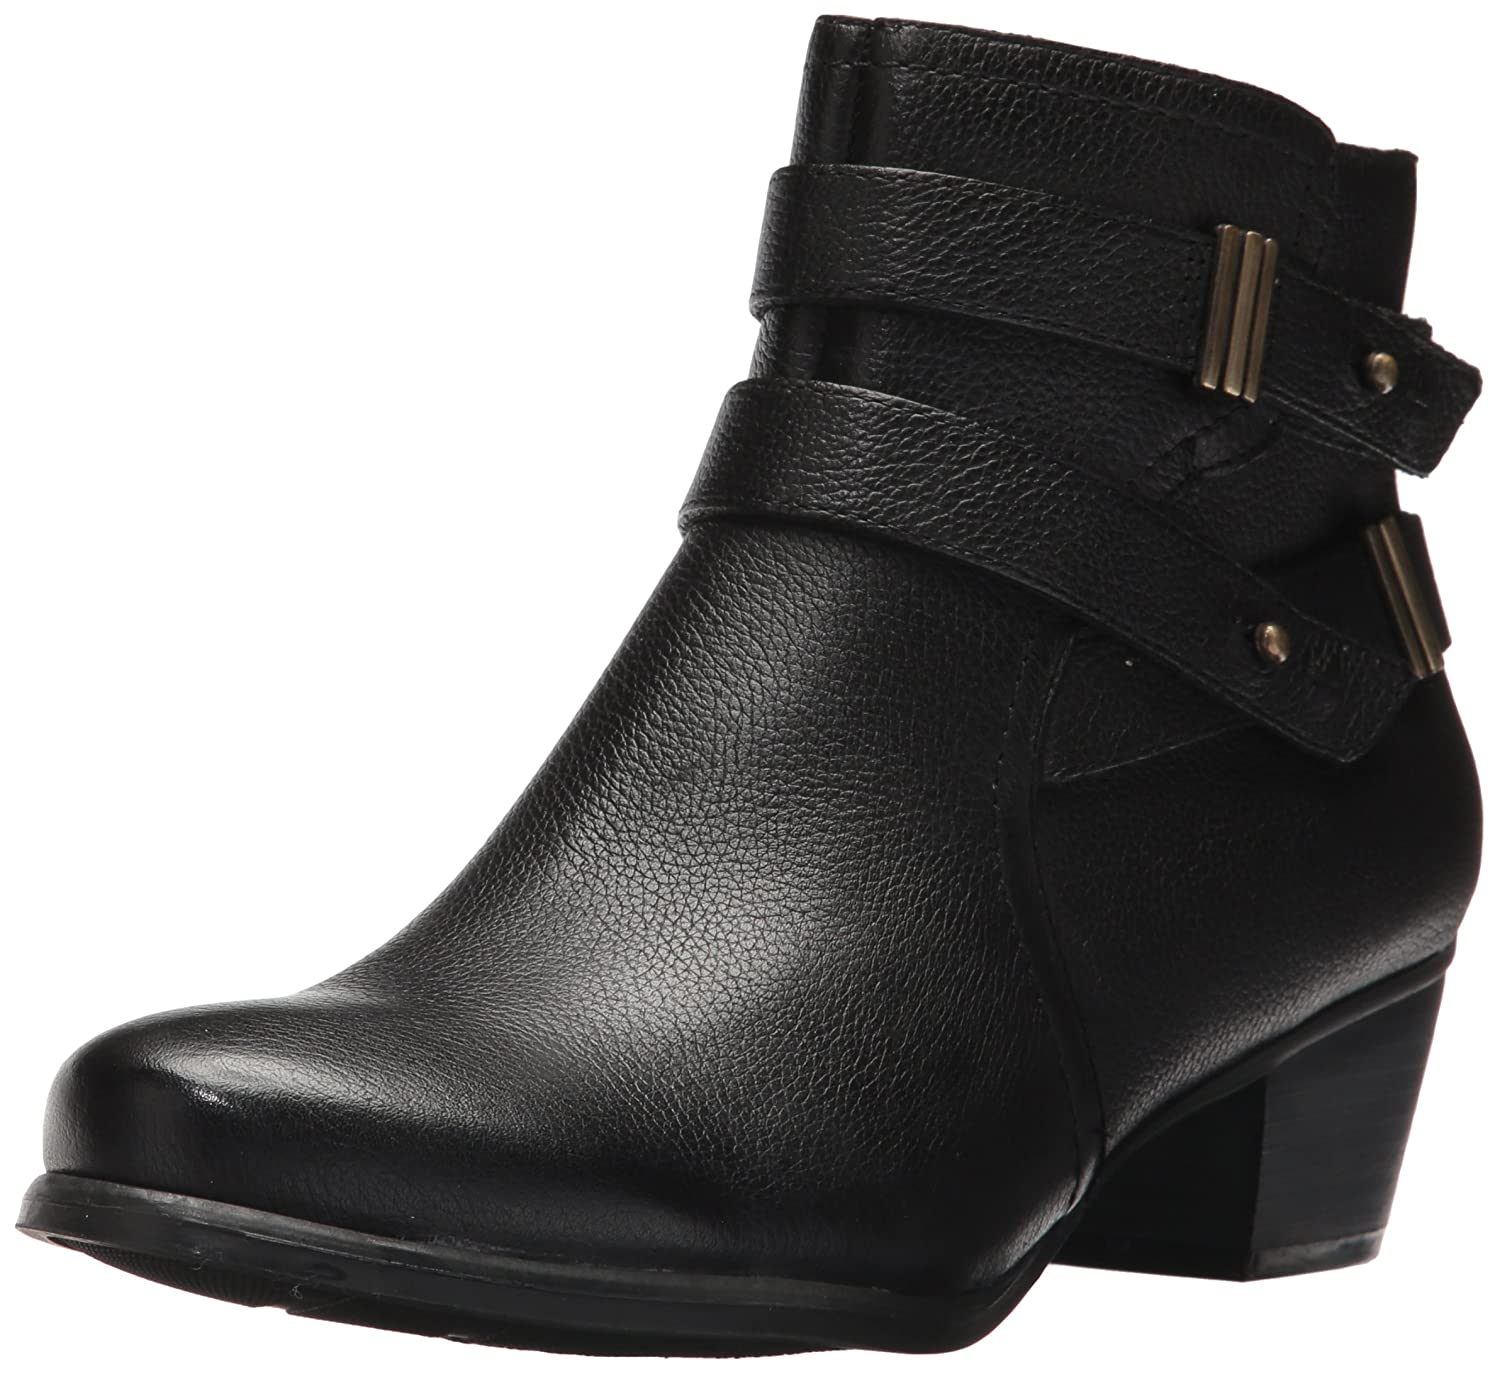 Naturalizer Womens Kepler Leather Closed Toe Ankle Fashion Boots B06ZY6VD92 8 C/D US|Black Leather